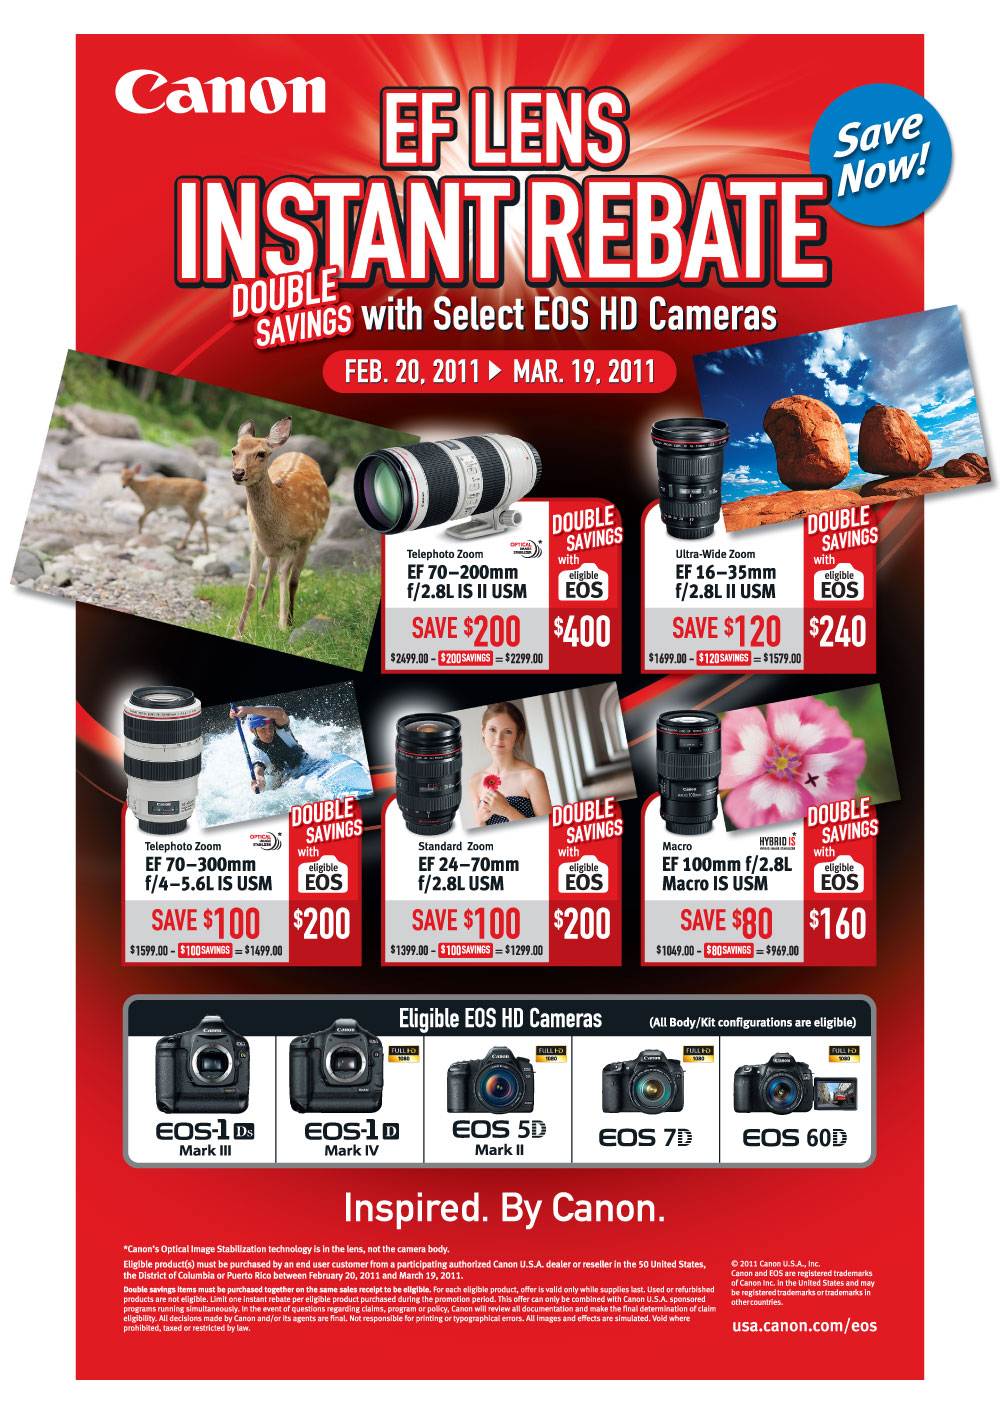 Rebate Alcon Choice Rebate